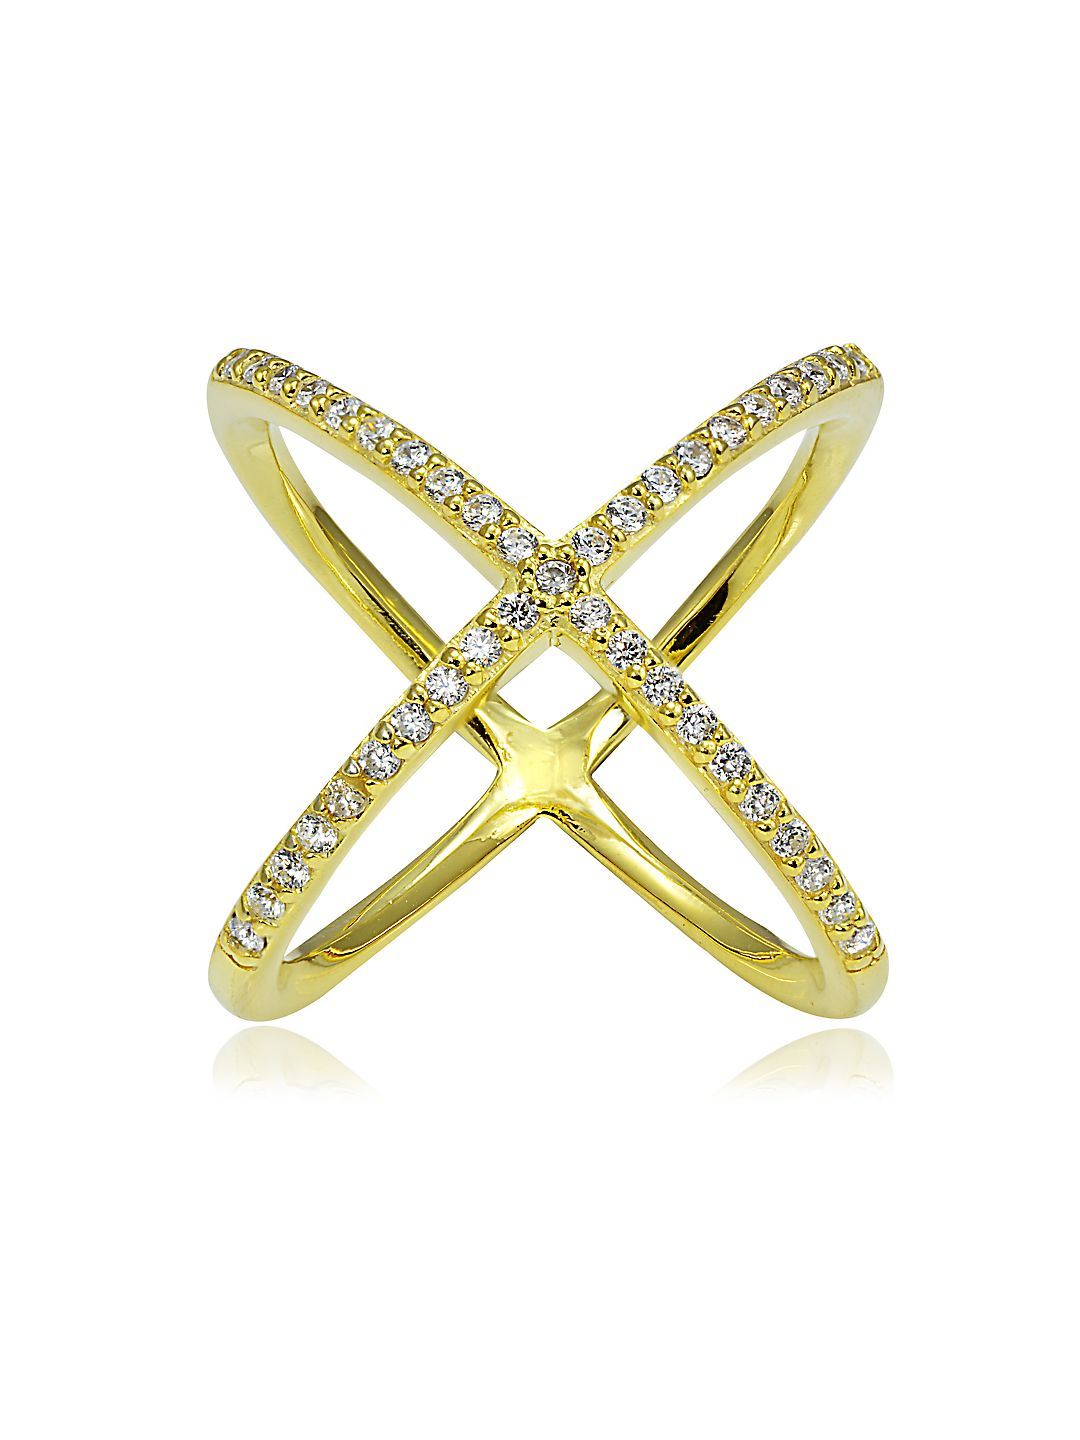 Saturn Cubic Zirconia and 18K Goldplated Sterling Silver Studded Crisscross Ring